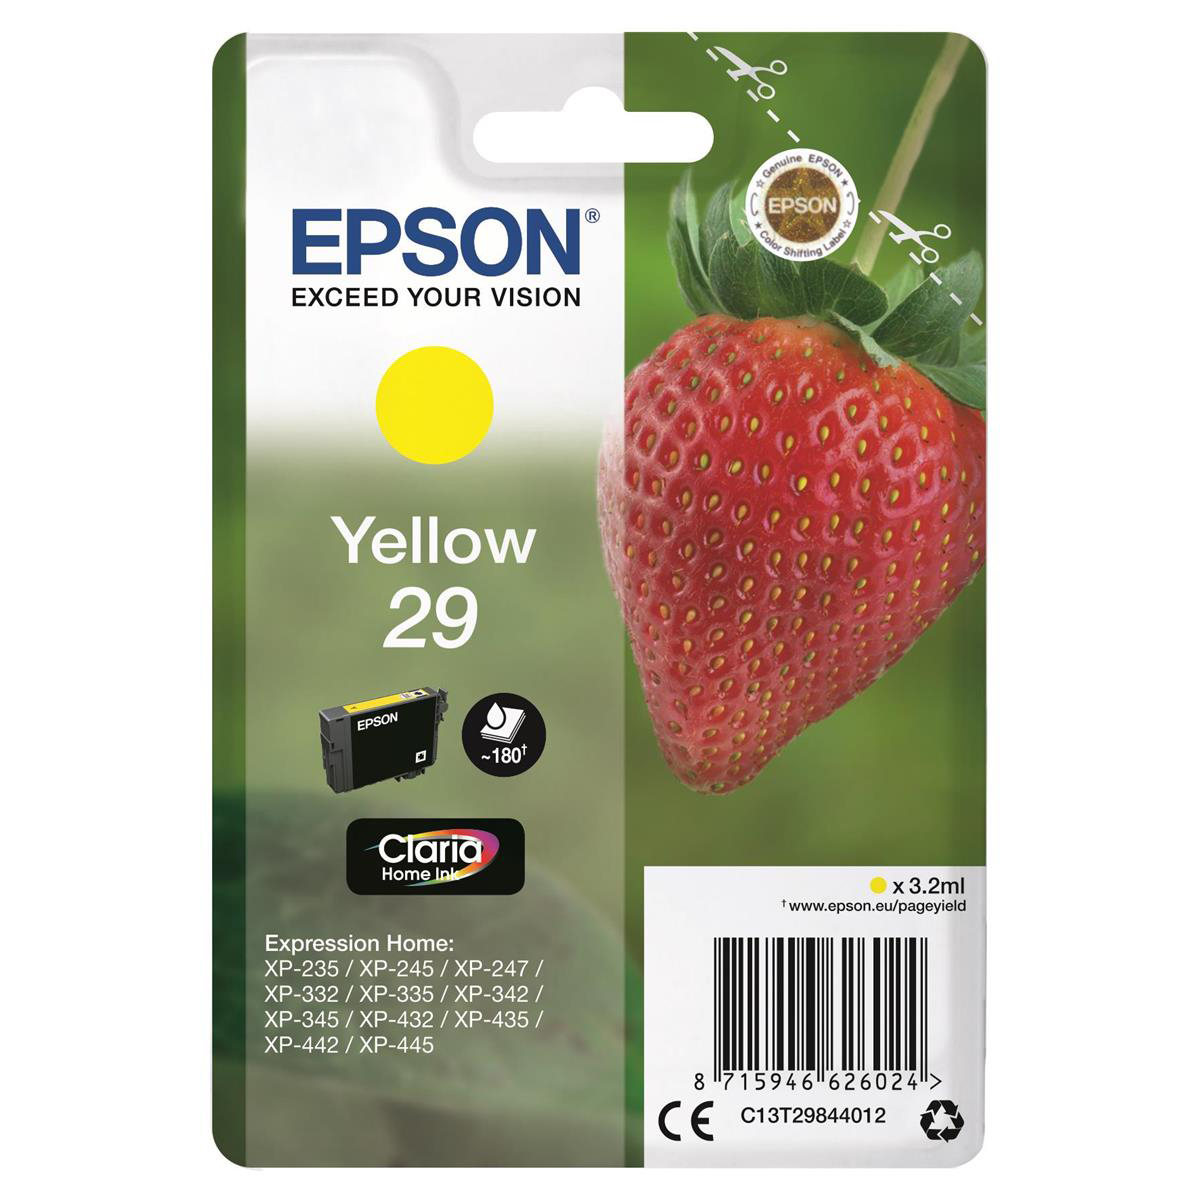 Epson 29 InkJet Cartridge Strawberry Page Life 180pp 3.2ml Yellow Ref C13T29844012